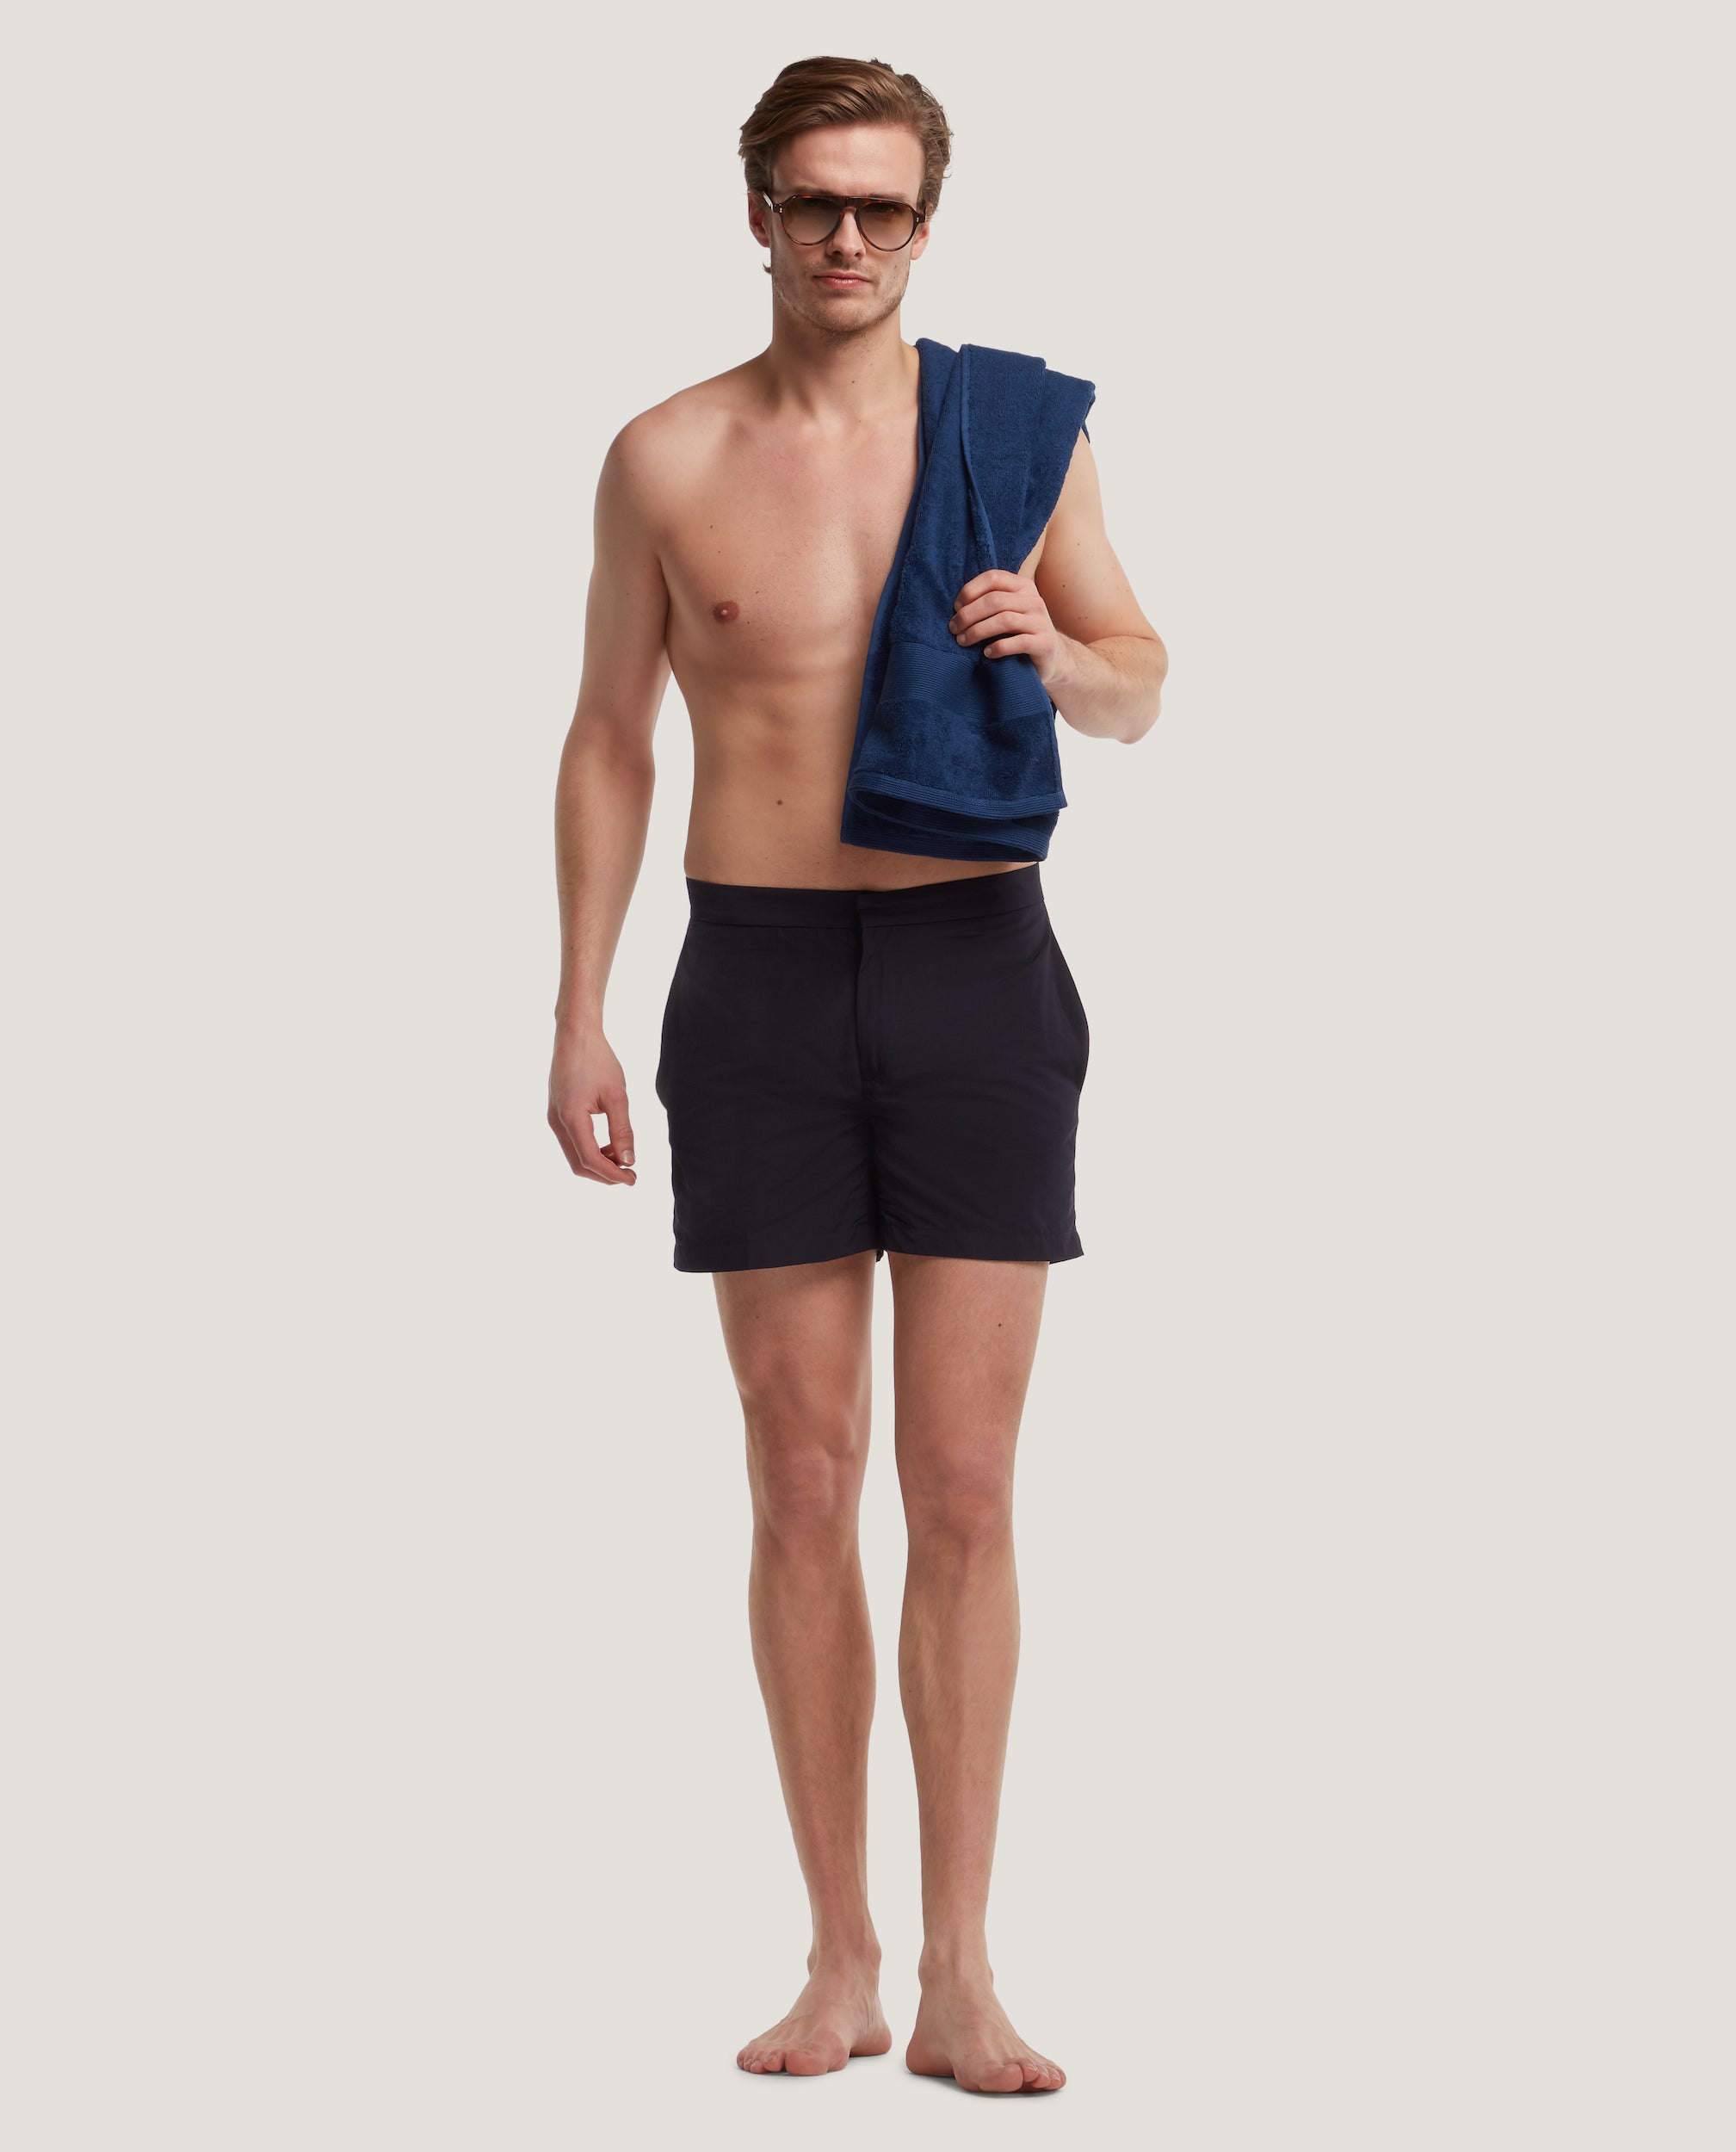 IVAR Swim shorts | Medium length | Night Blue